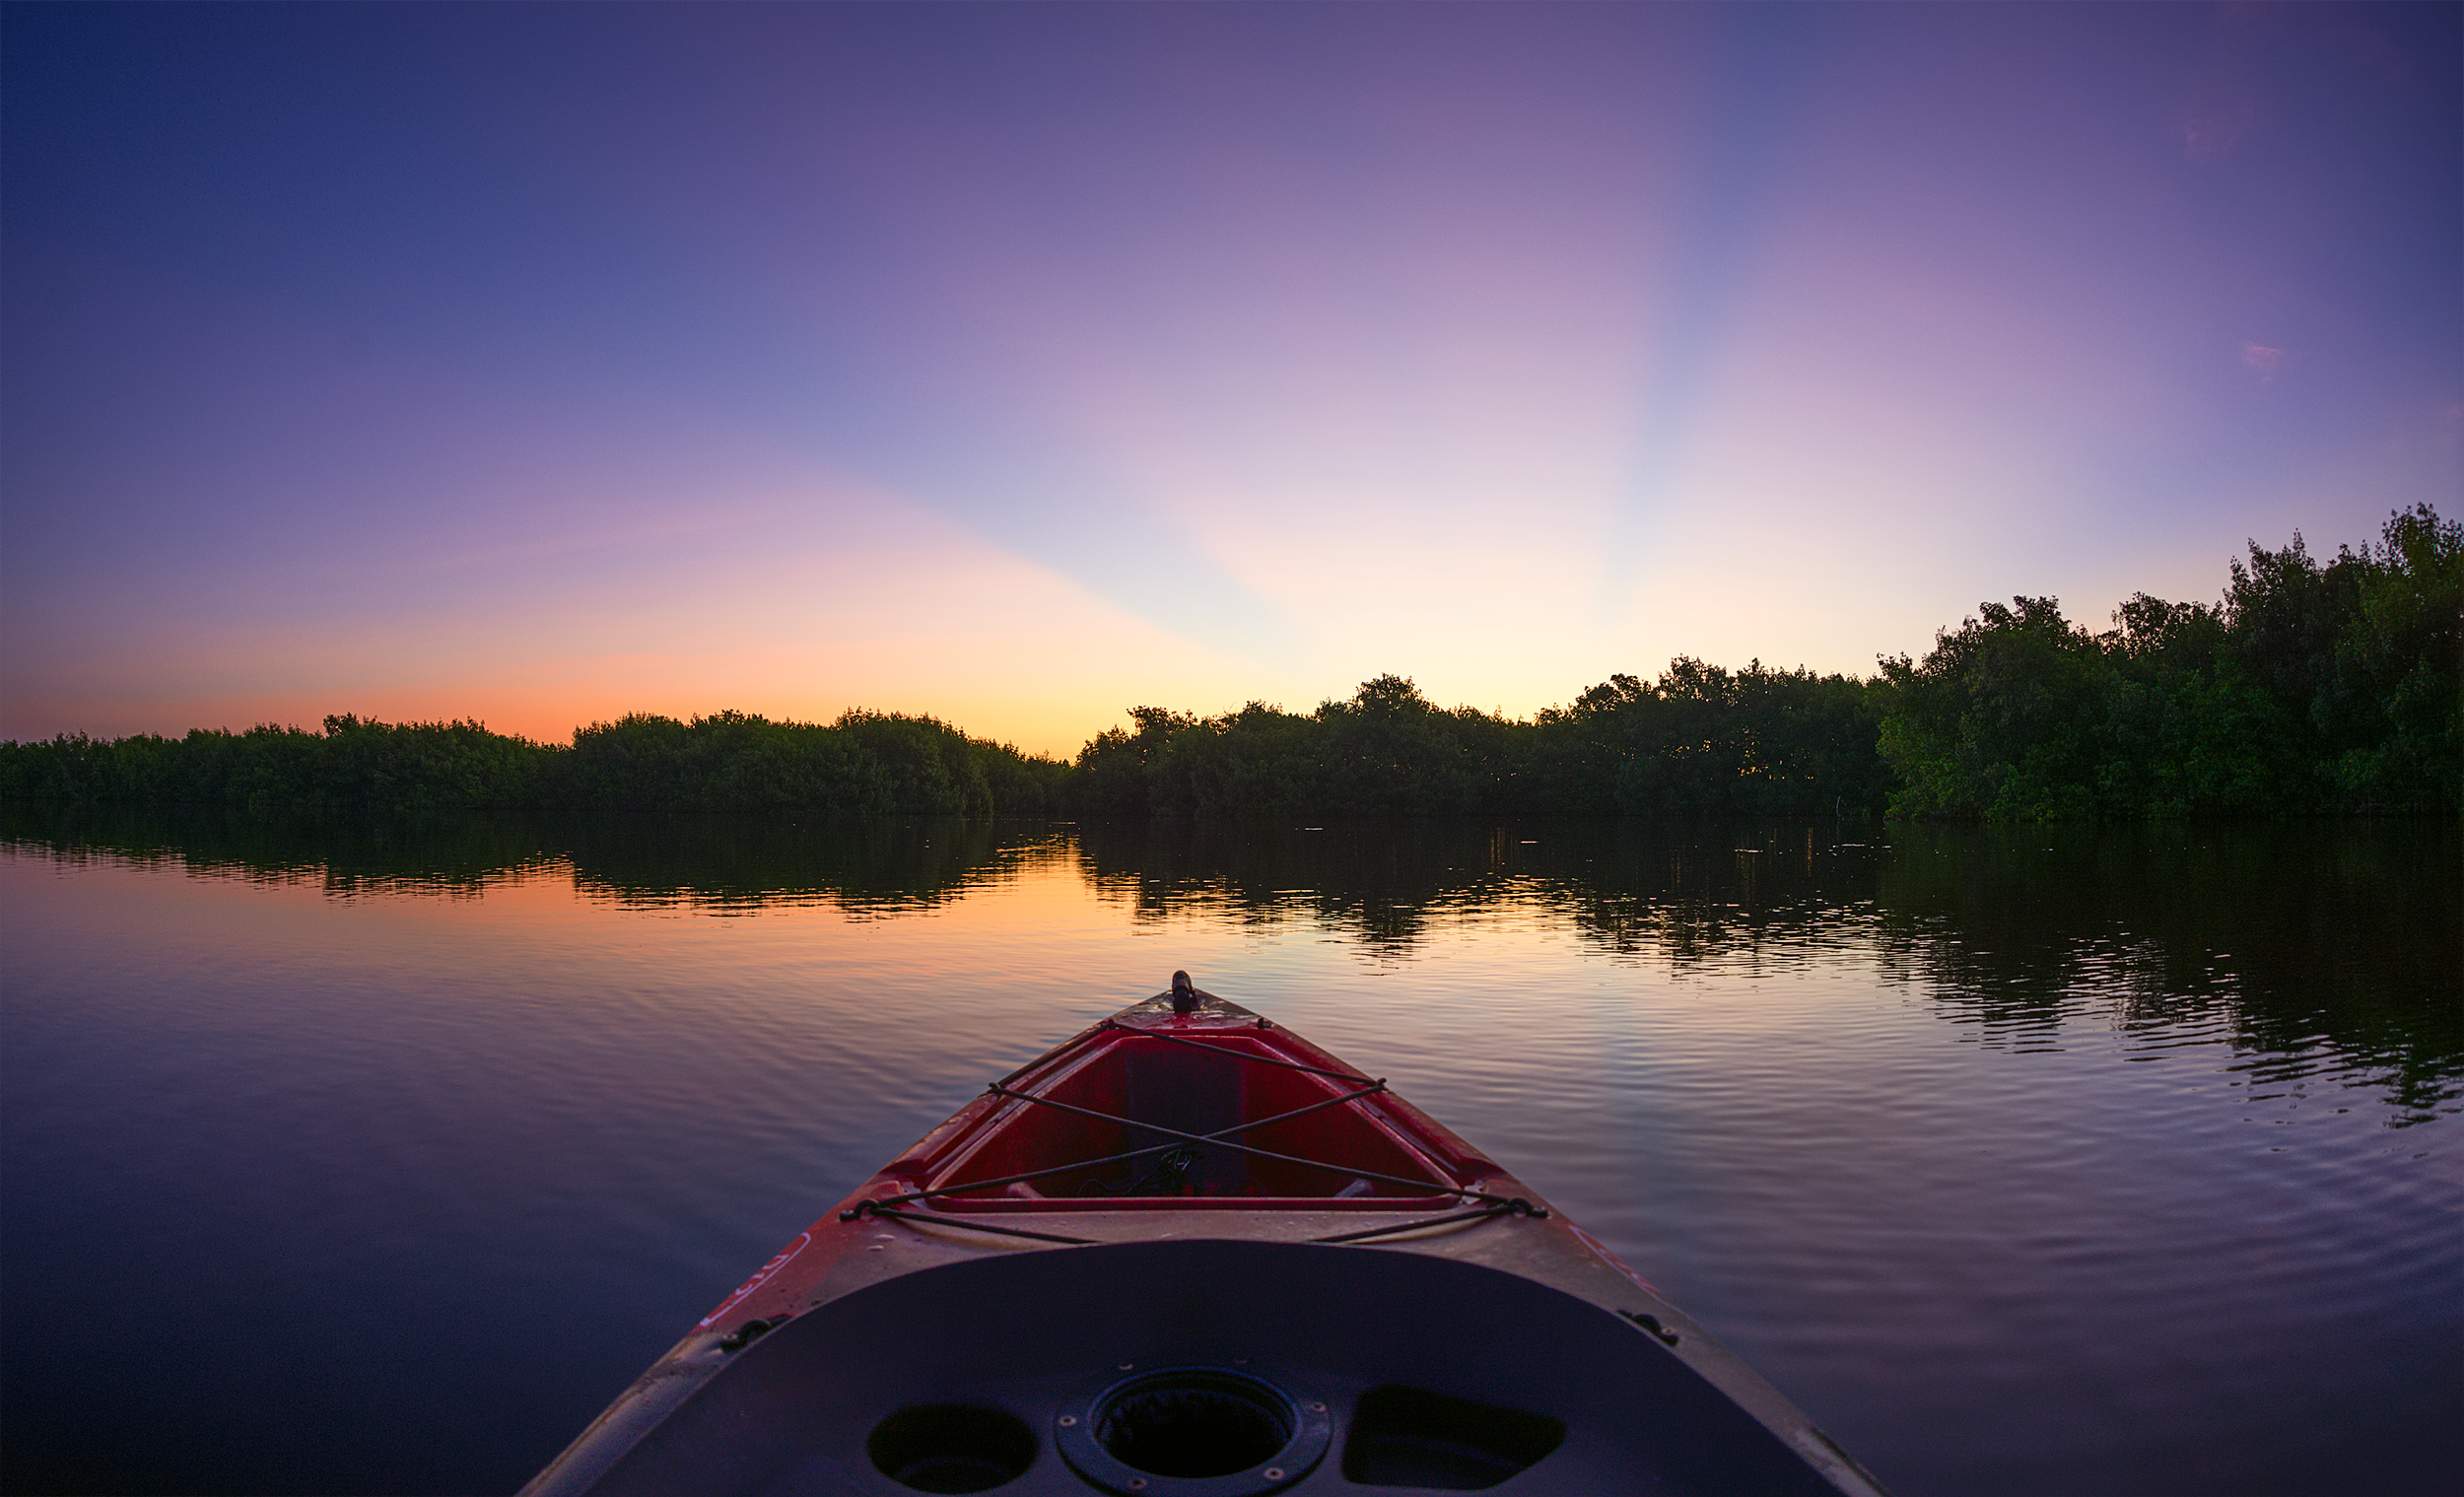 Magenta Moment - Kayak Sunrise -Taking in the sunrise at Fakahatchee Strand Preserve State Park, in the Everglades National Park.